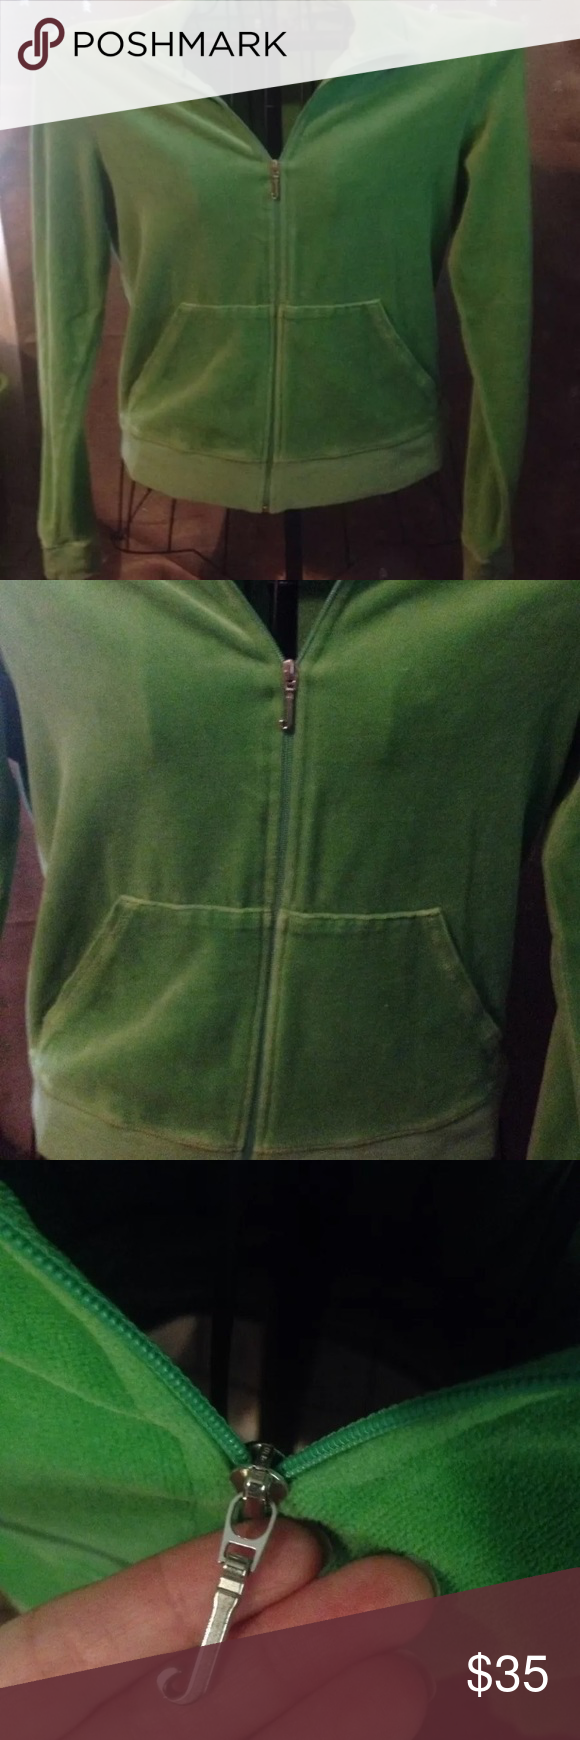 5f1be8fcd70a Juicy Couture Terry Cloth Track Jacket XL Green Juicy Couture Terry Cloth  Track Jacket! Size